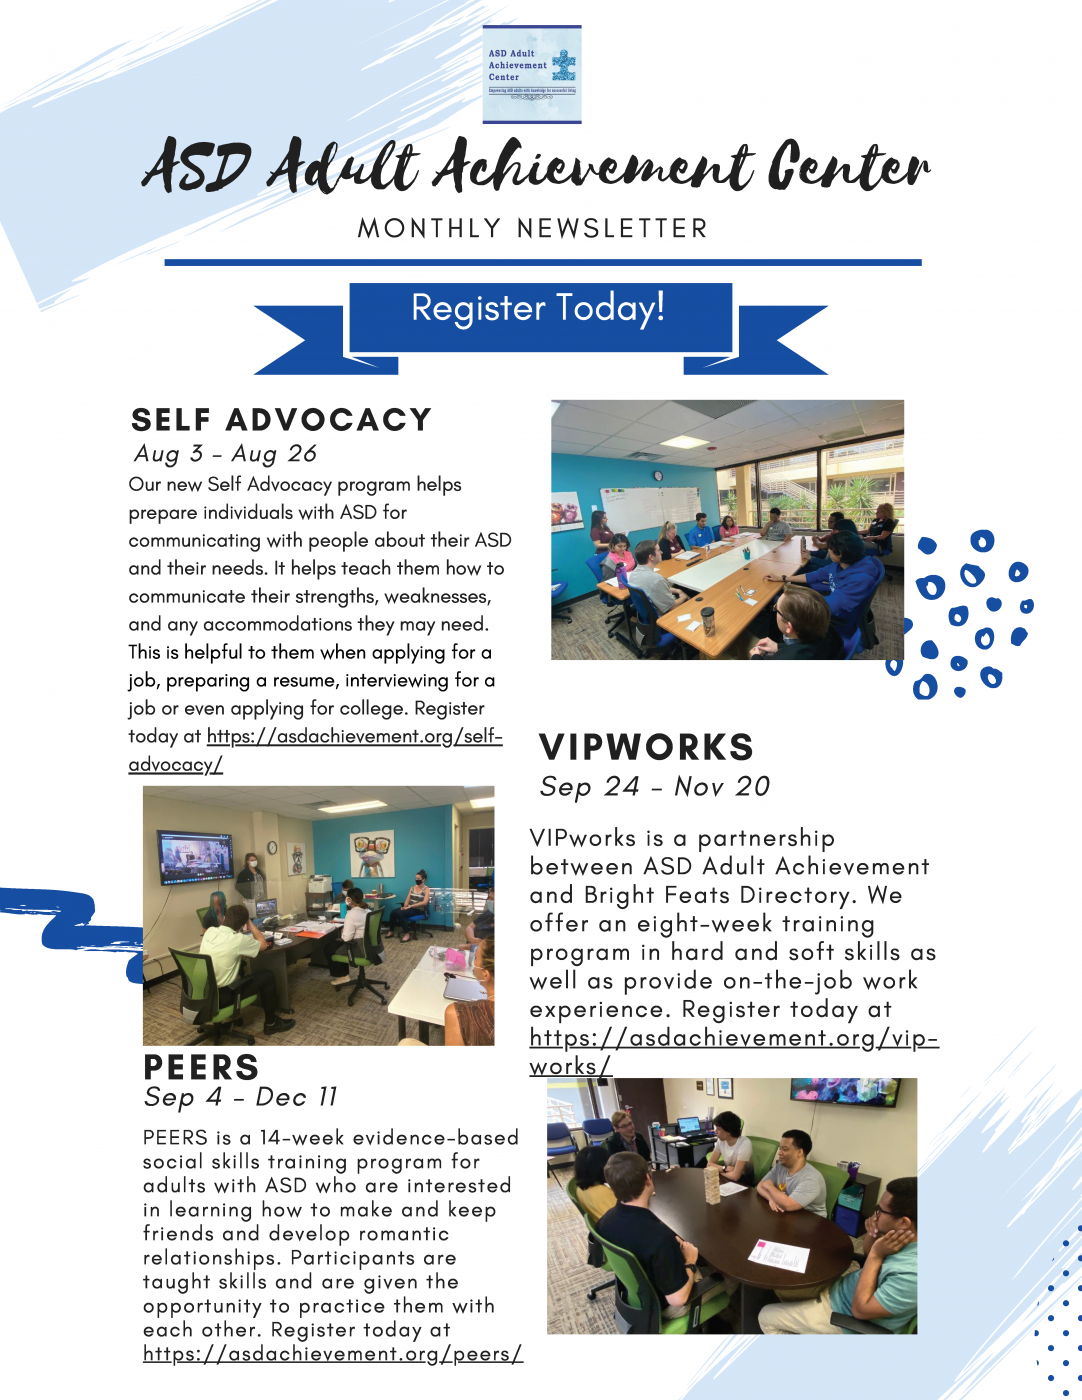 Fall 2020 programs at ASD Adult Achievement Center